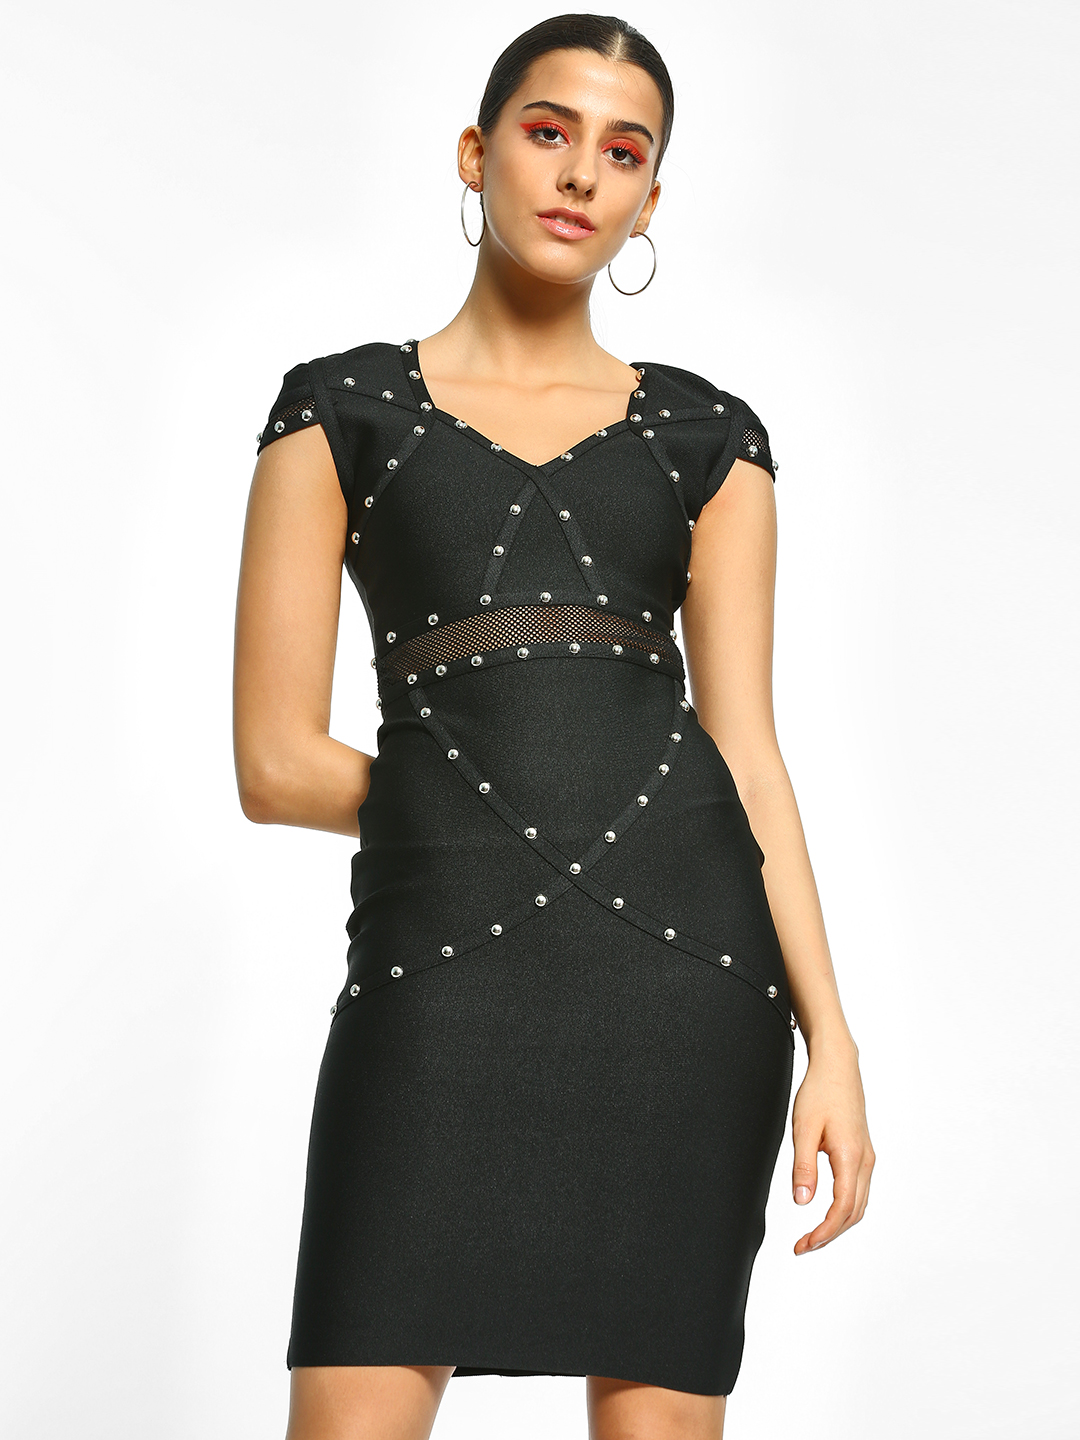 Realty, Lajoly & Co Black Studded Bandage Bodycon Dress 1